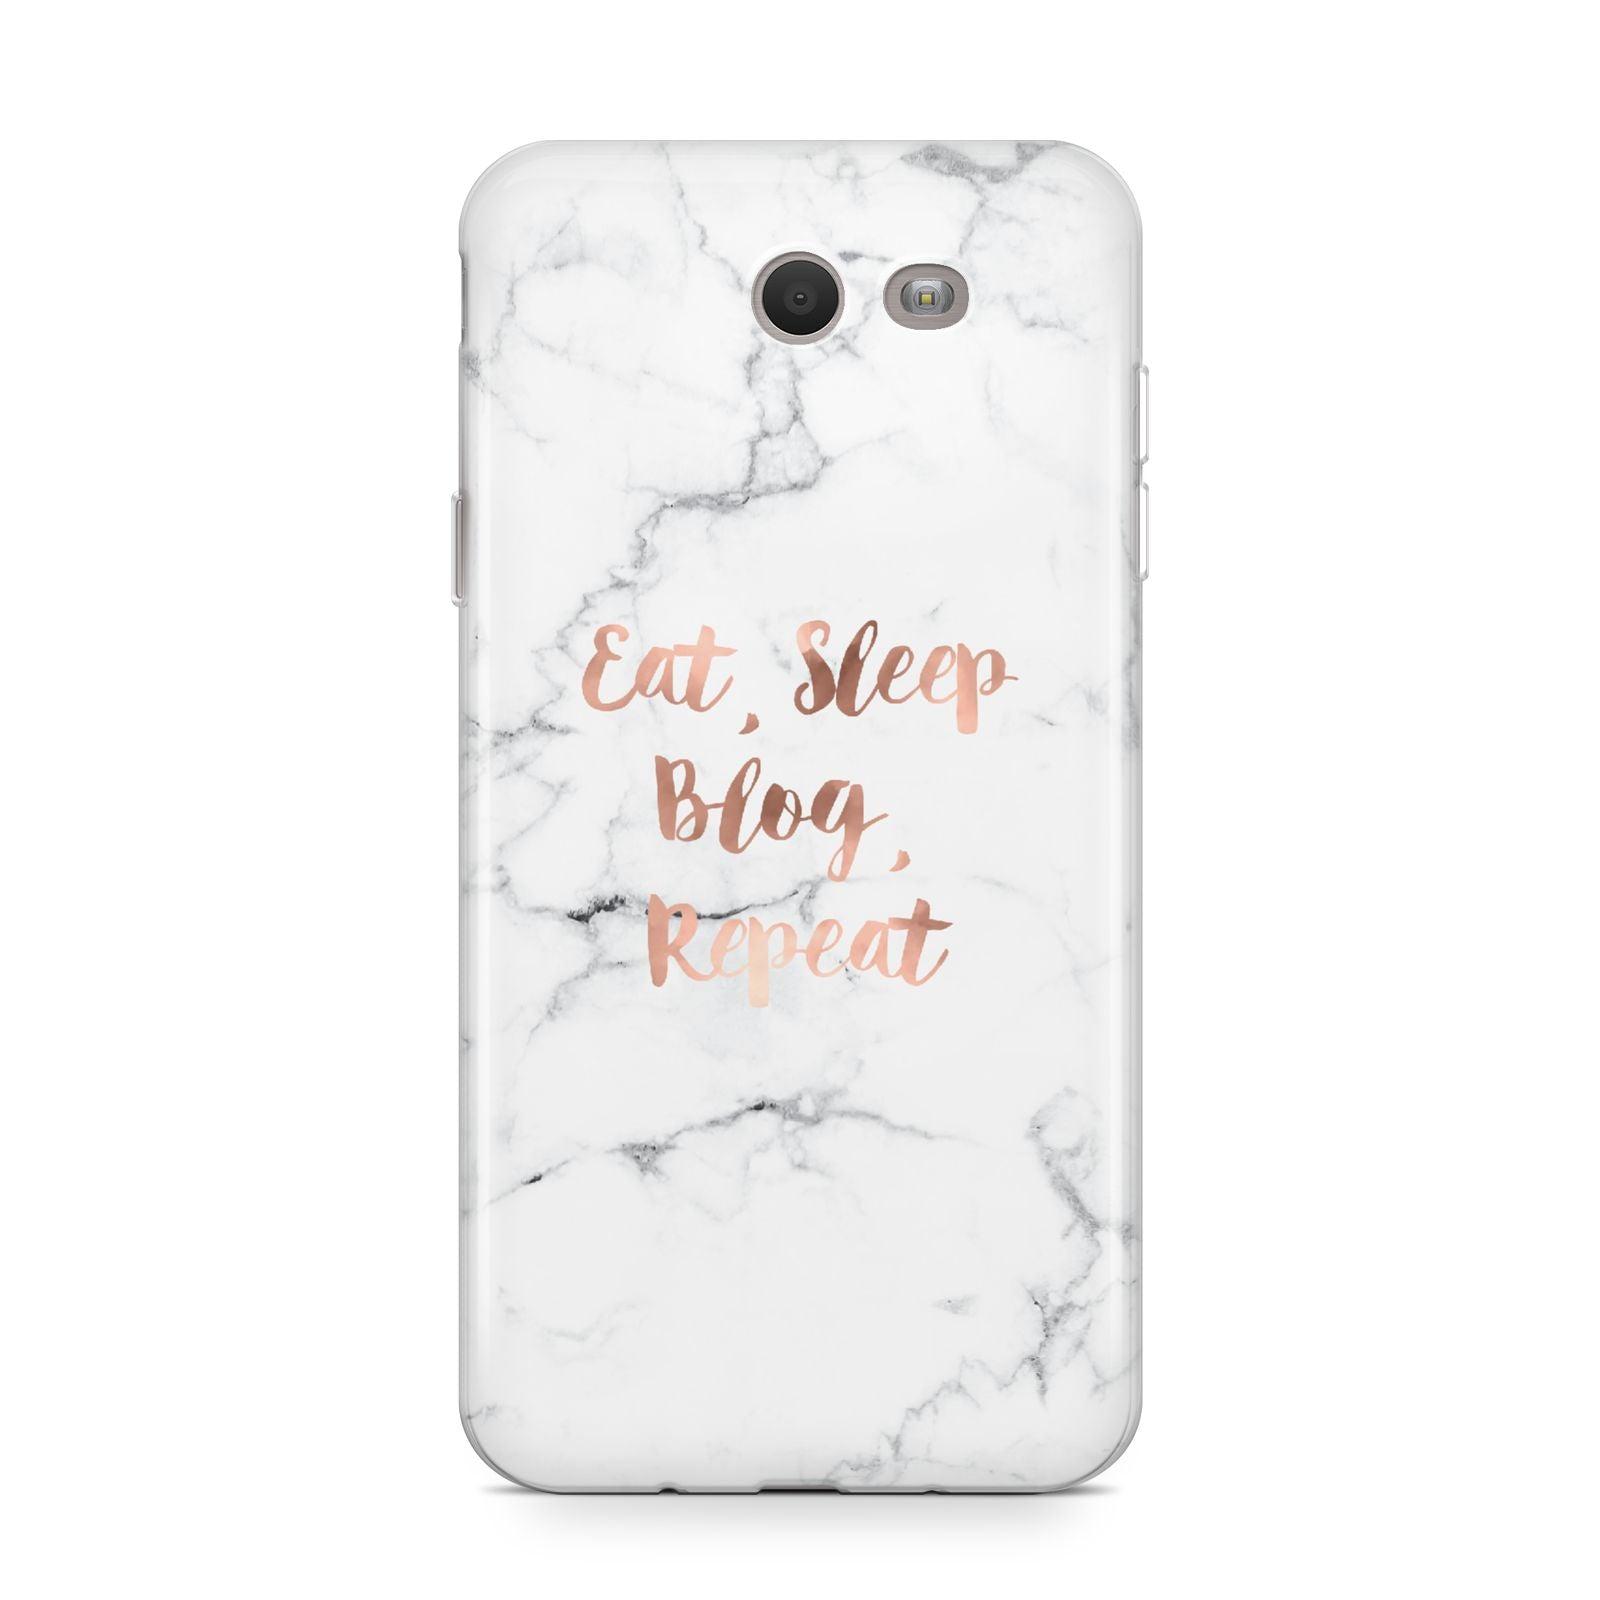 Eat Sleep Blog Repeat Marble Effect Samsung Galaxy J7 2017 Case